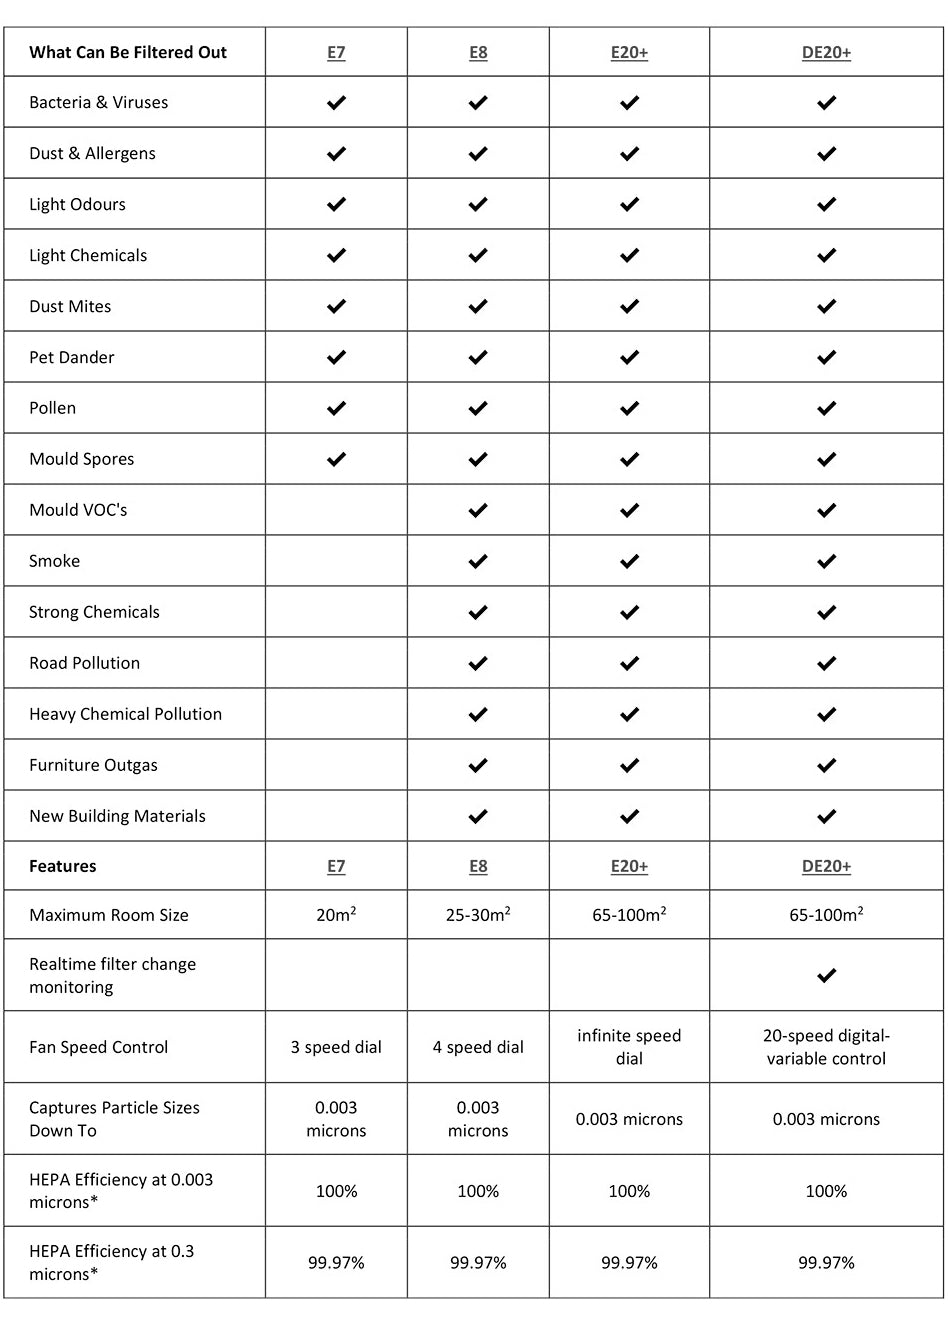 Choose Your InovaAir Air Purifier System - Comparison Chart - Buy from Air Purifiers Direct - www.airpurifiersdirect.com.au